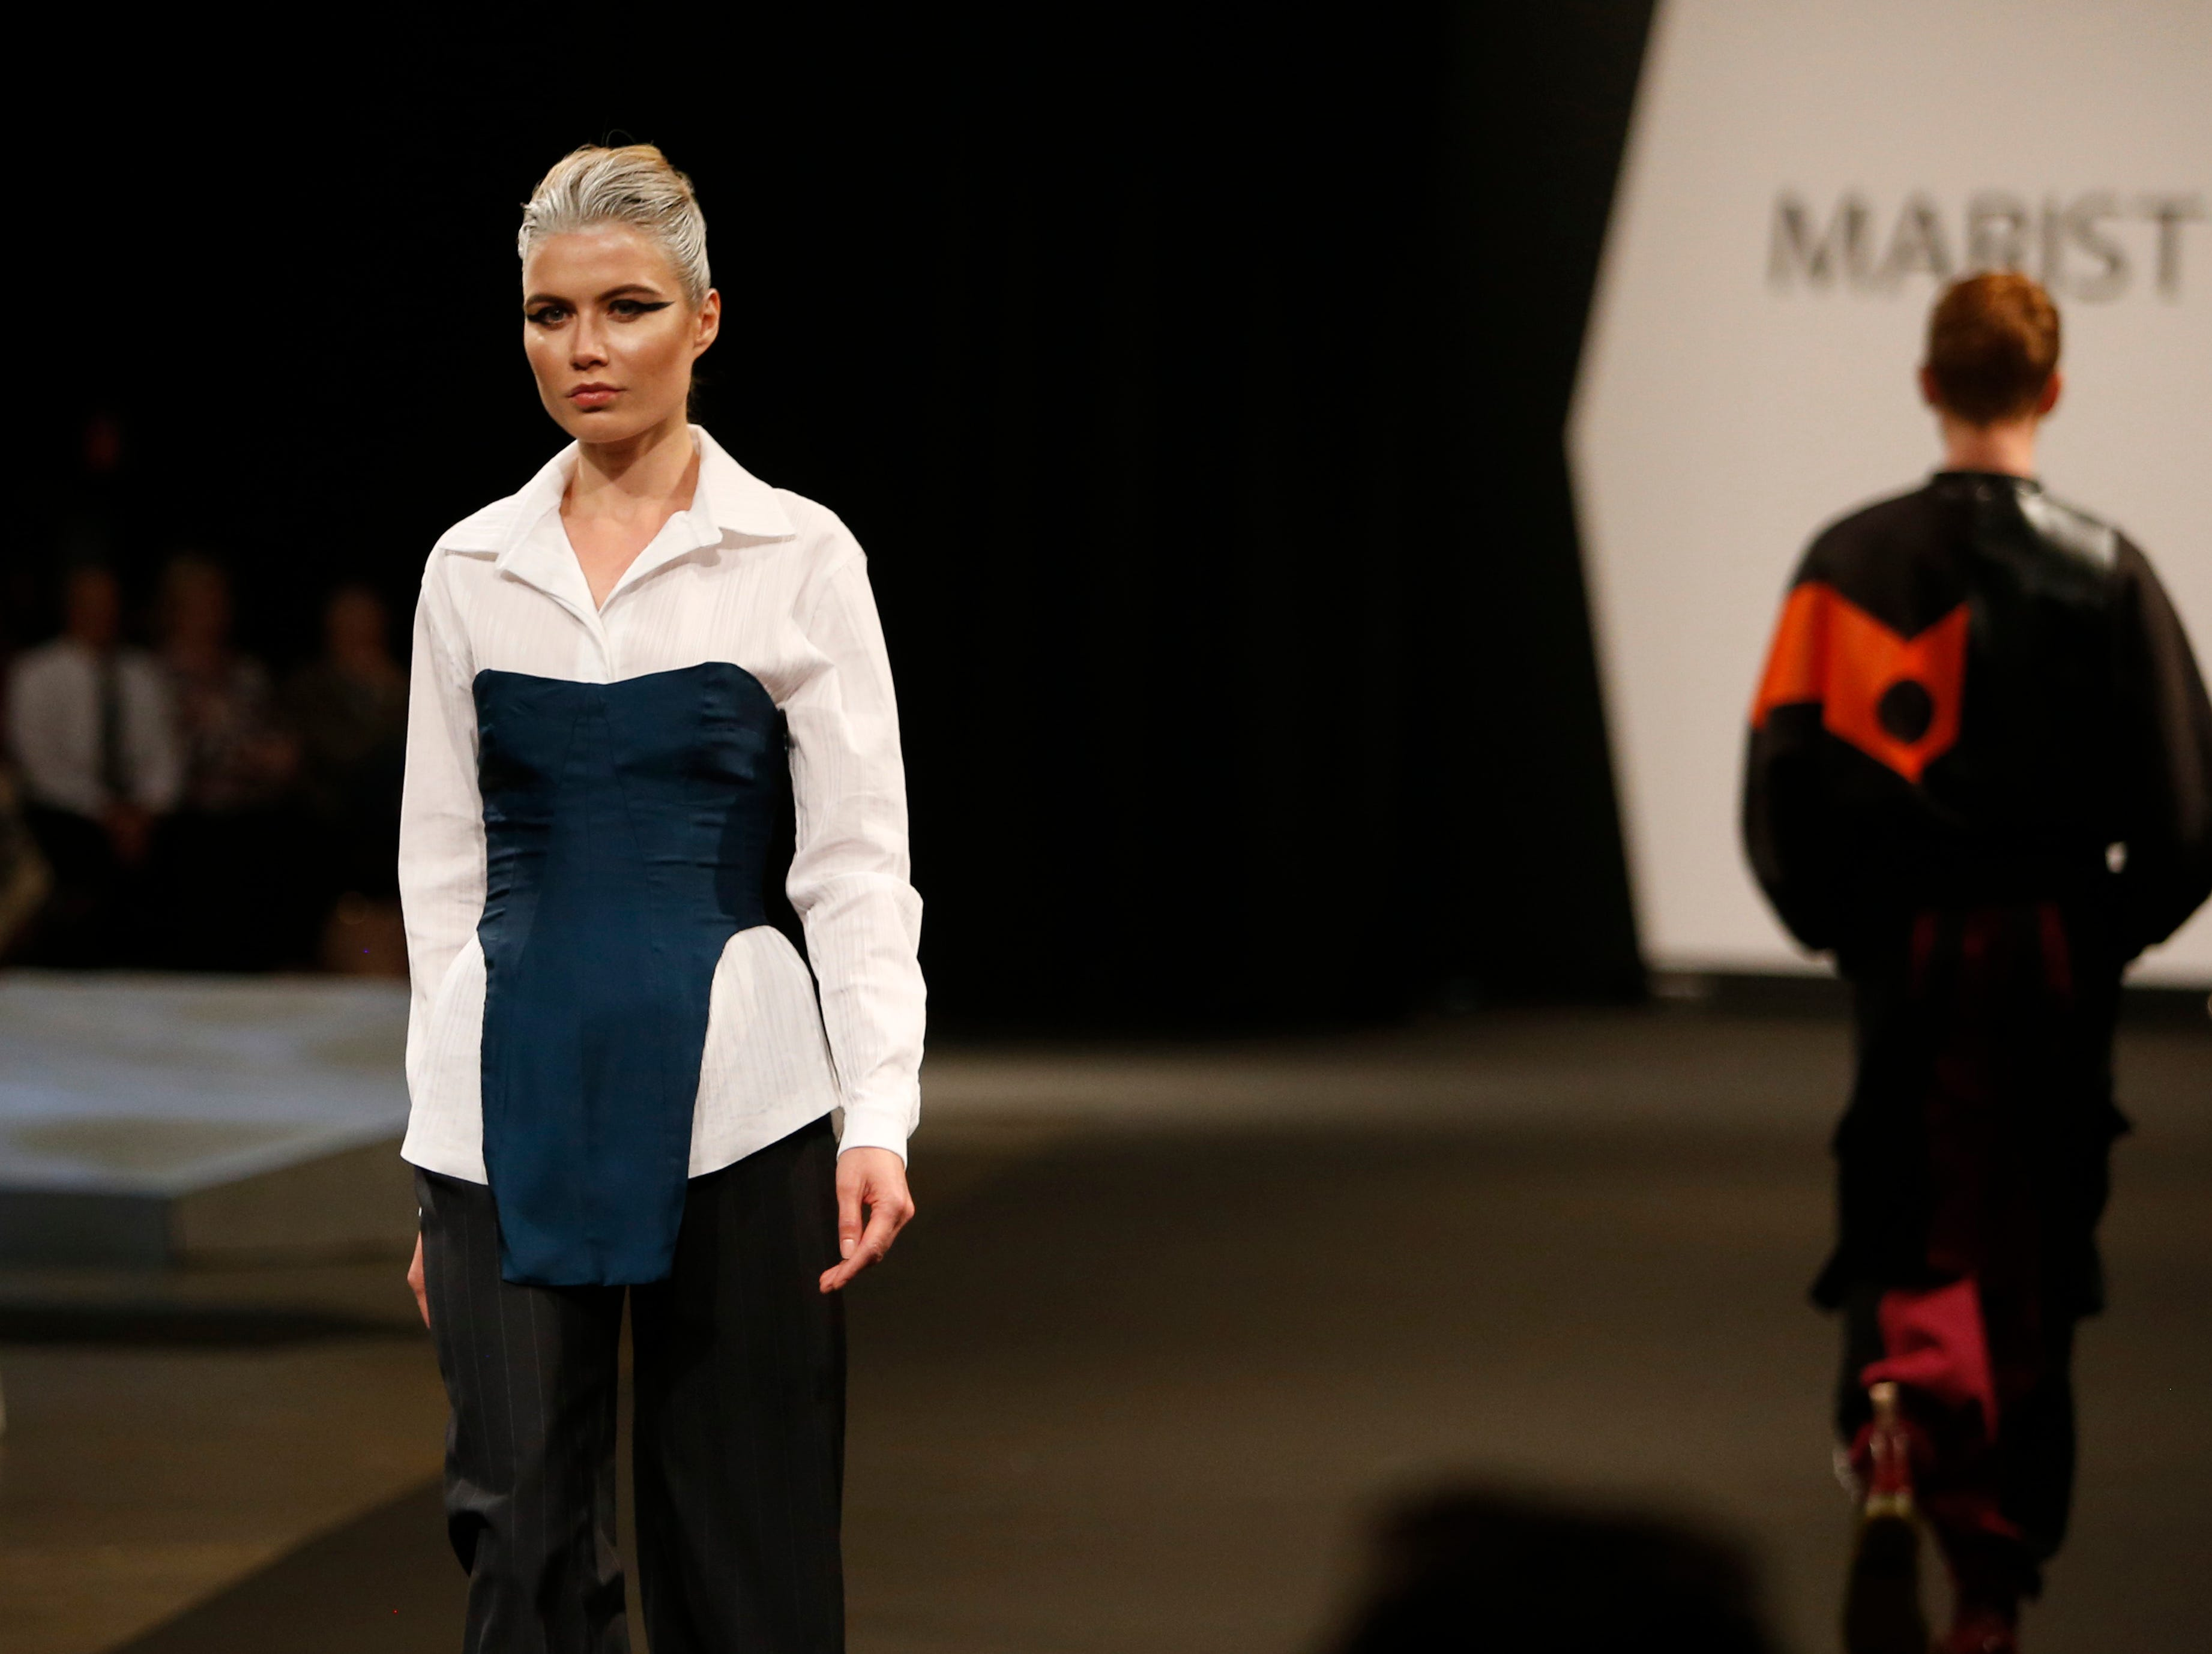 Designs from the collection of Marist College Fashion Department senior Kayla Torter during the 33rd Marist College Silver Needle Runway Show on May 10, 2019.